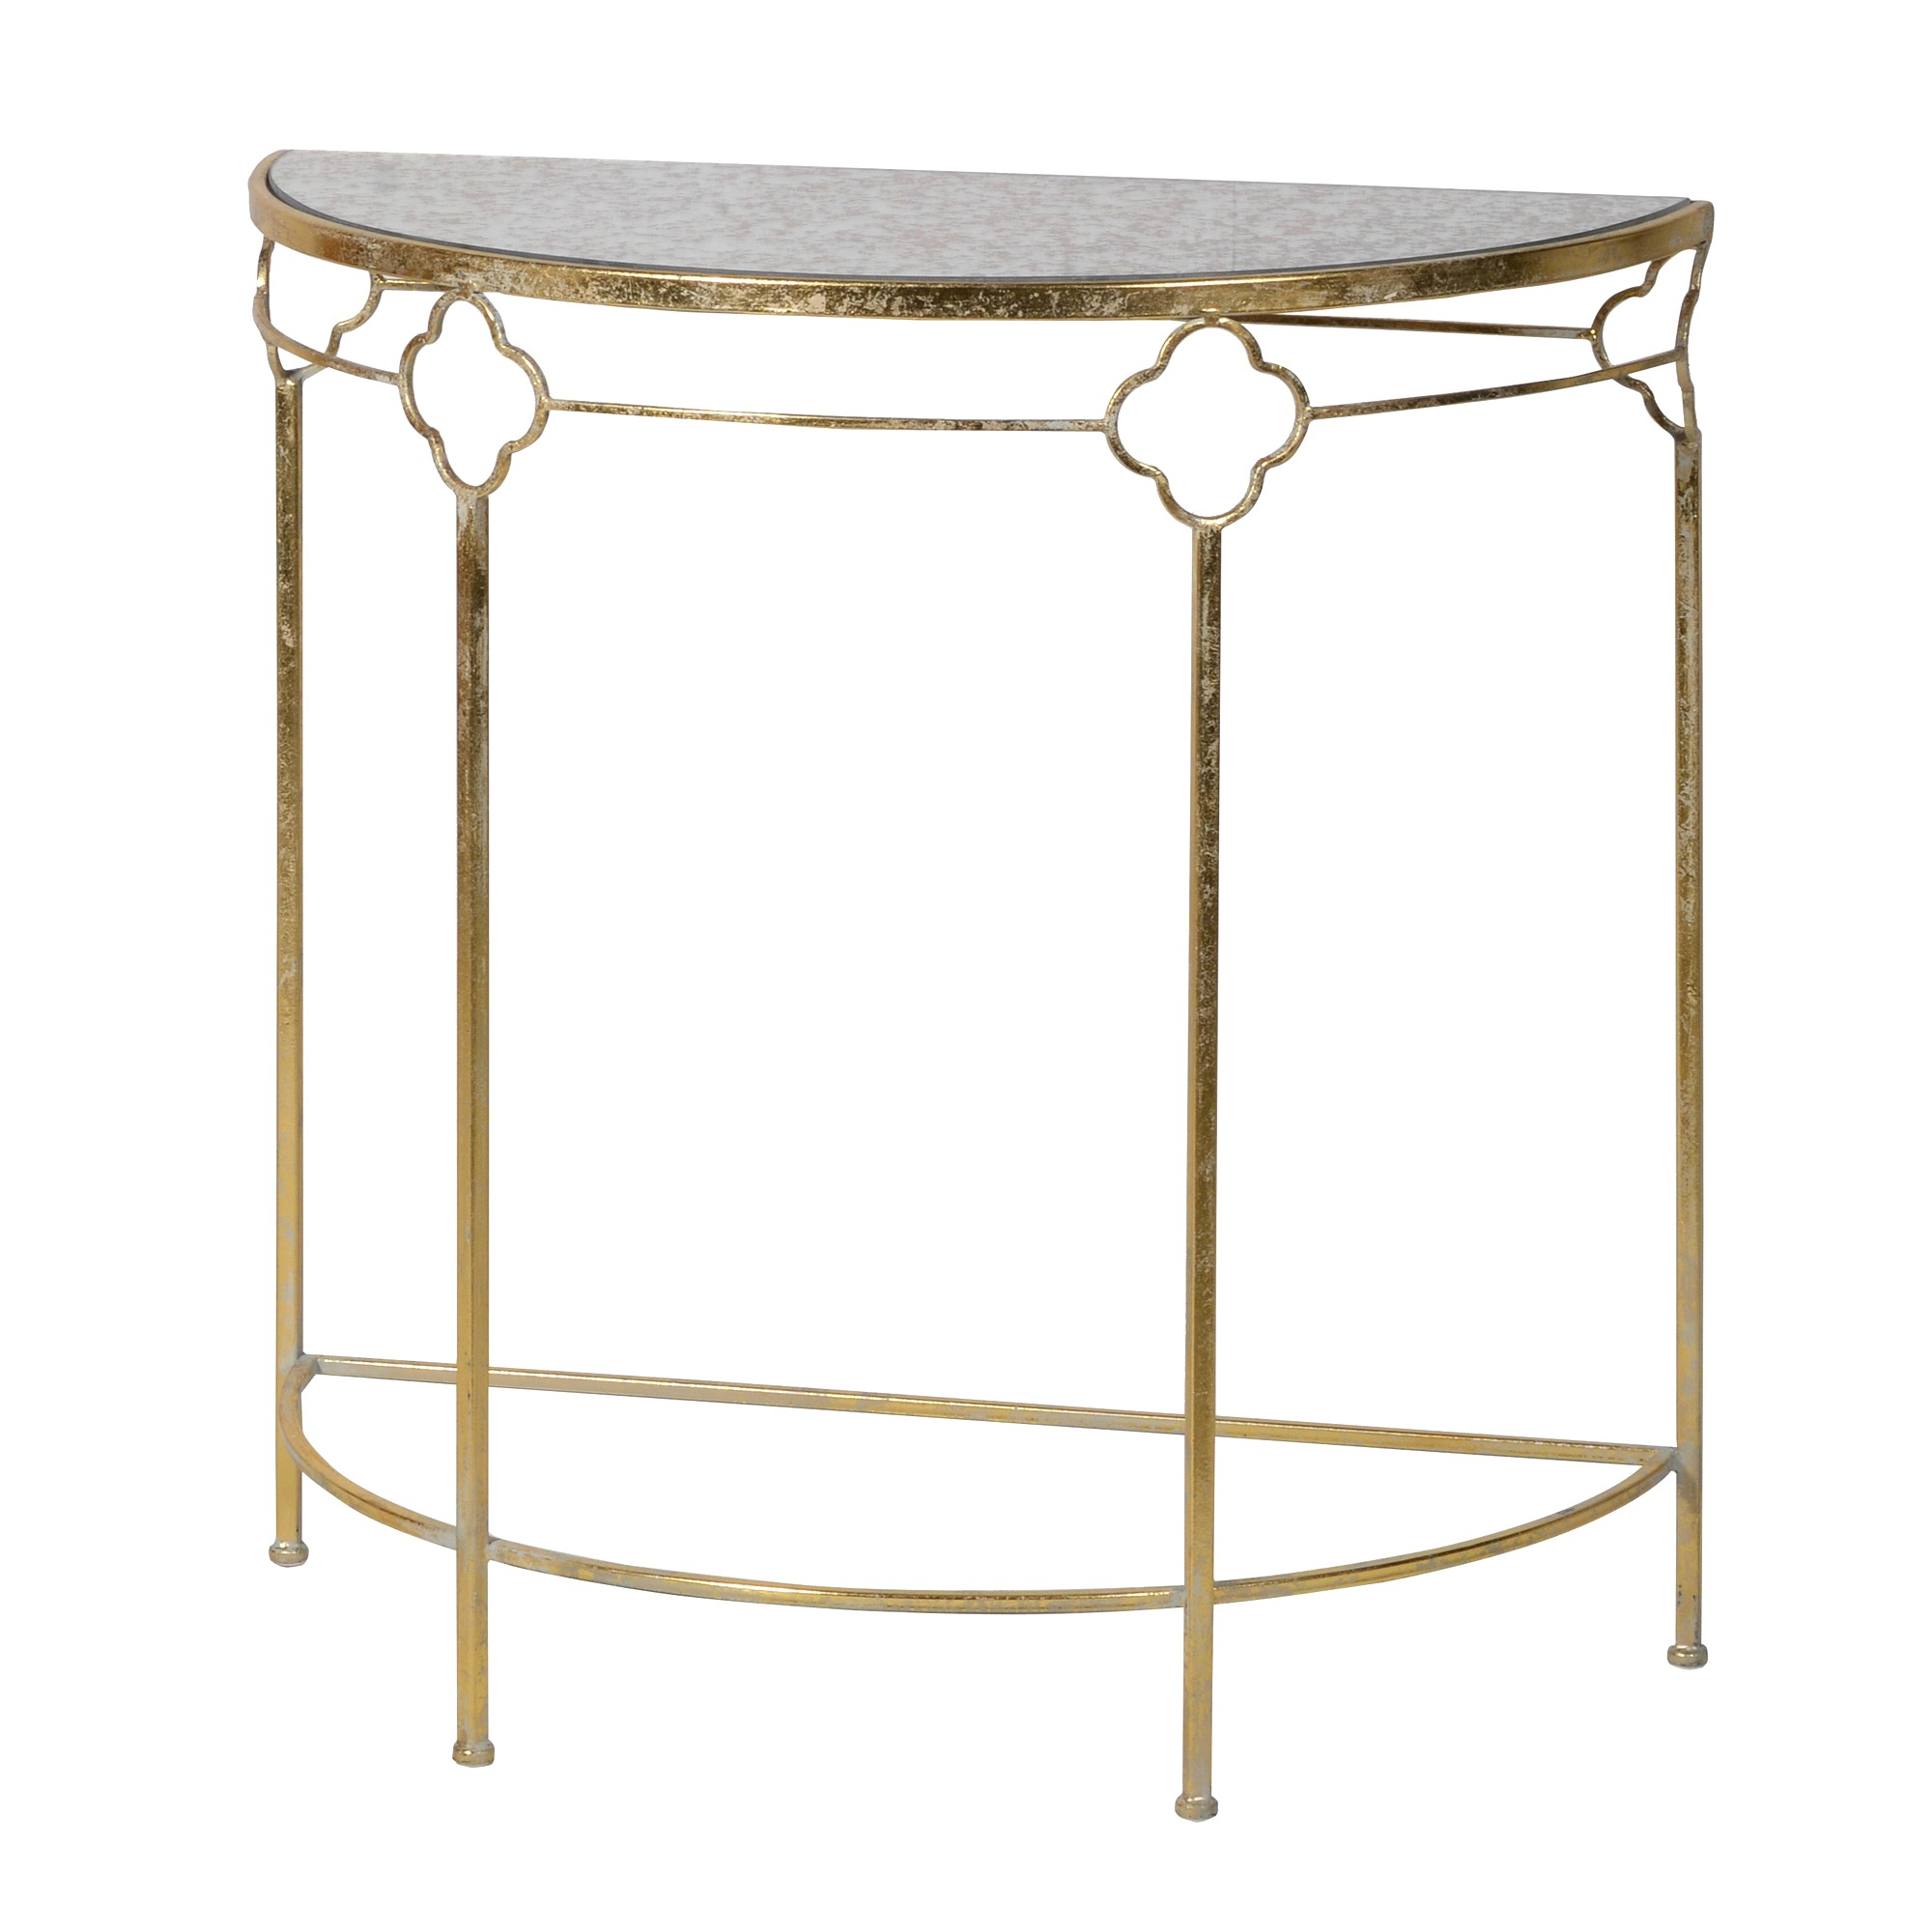 semi circle table elegantgowns console new glass topped round tables fresh tures modern desk home office half sofa coffee and accent wrought iron small moon end square side top